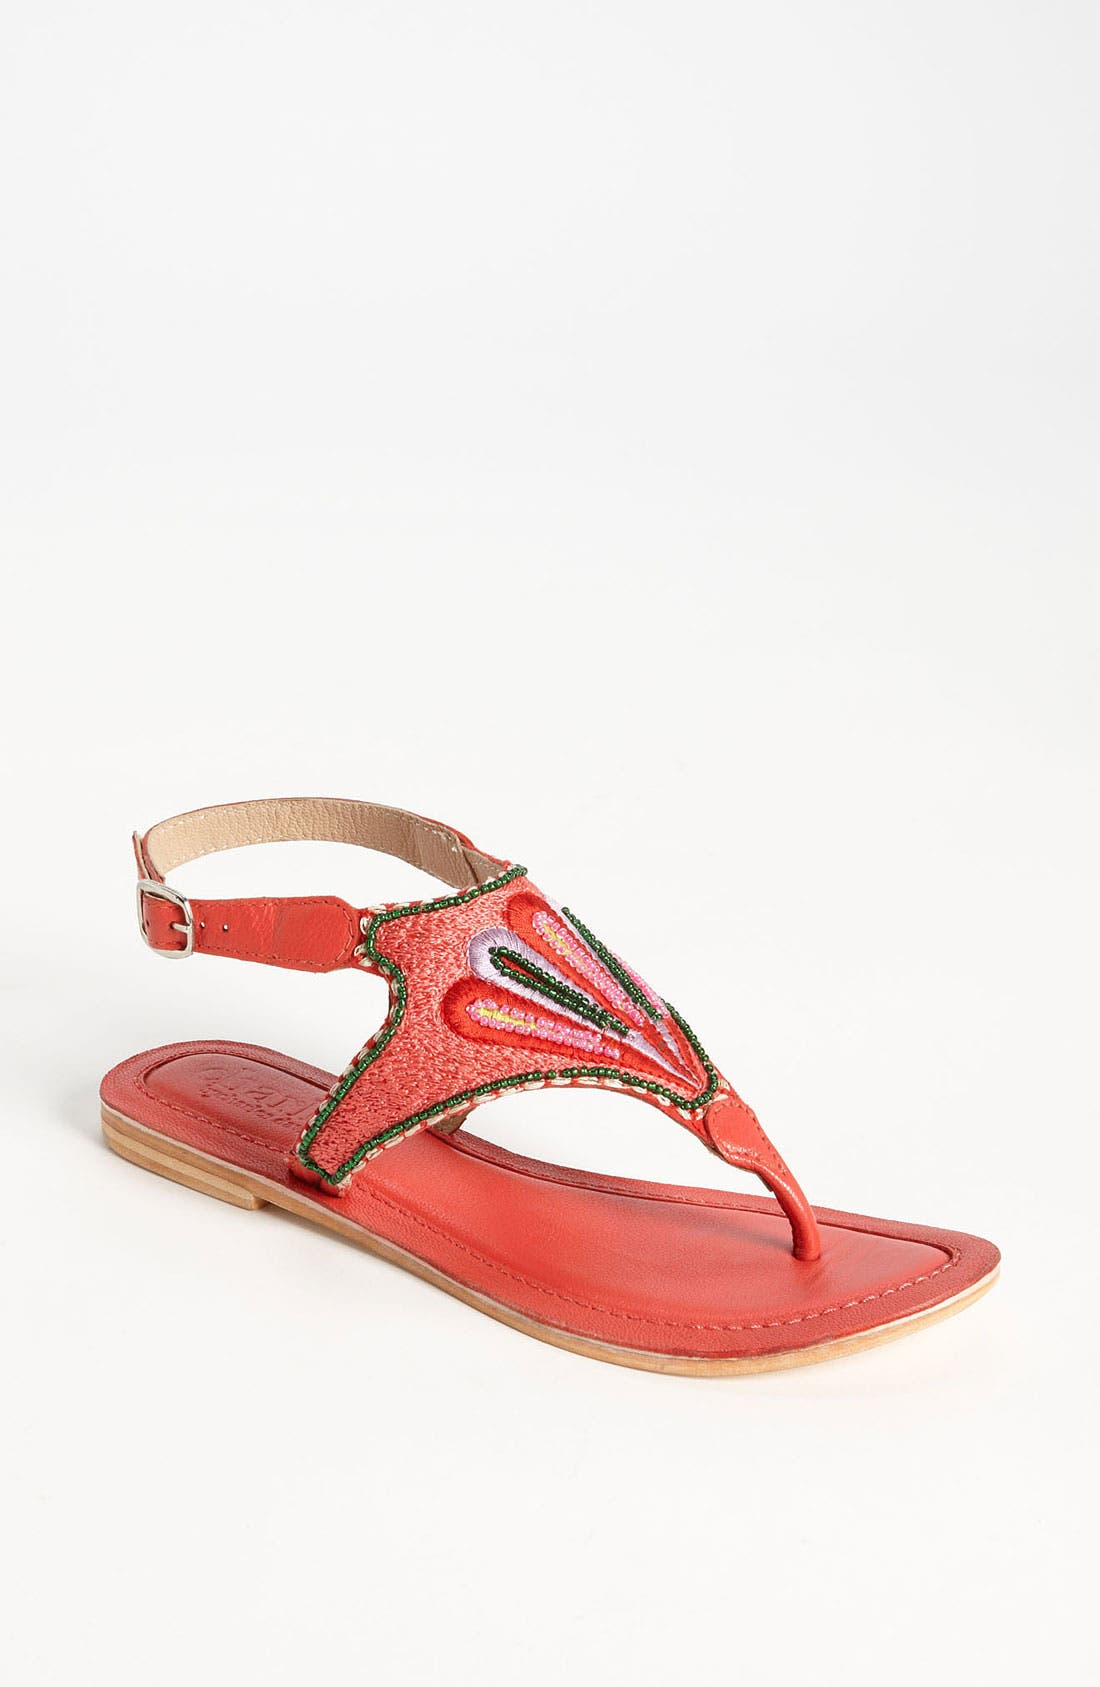 Alternate Image 1 Selected - Charles by Charles David 'Valli' Sandal